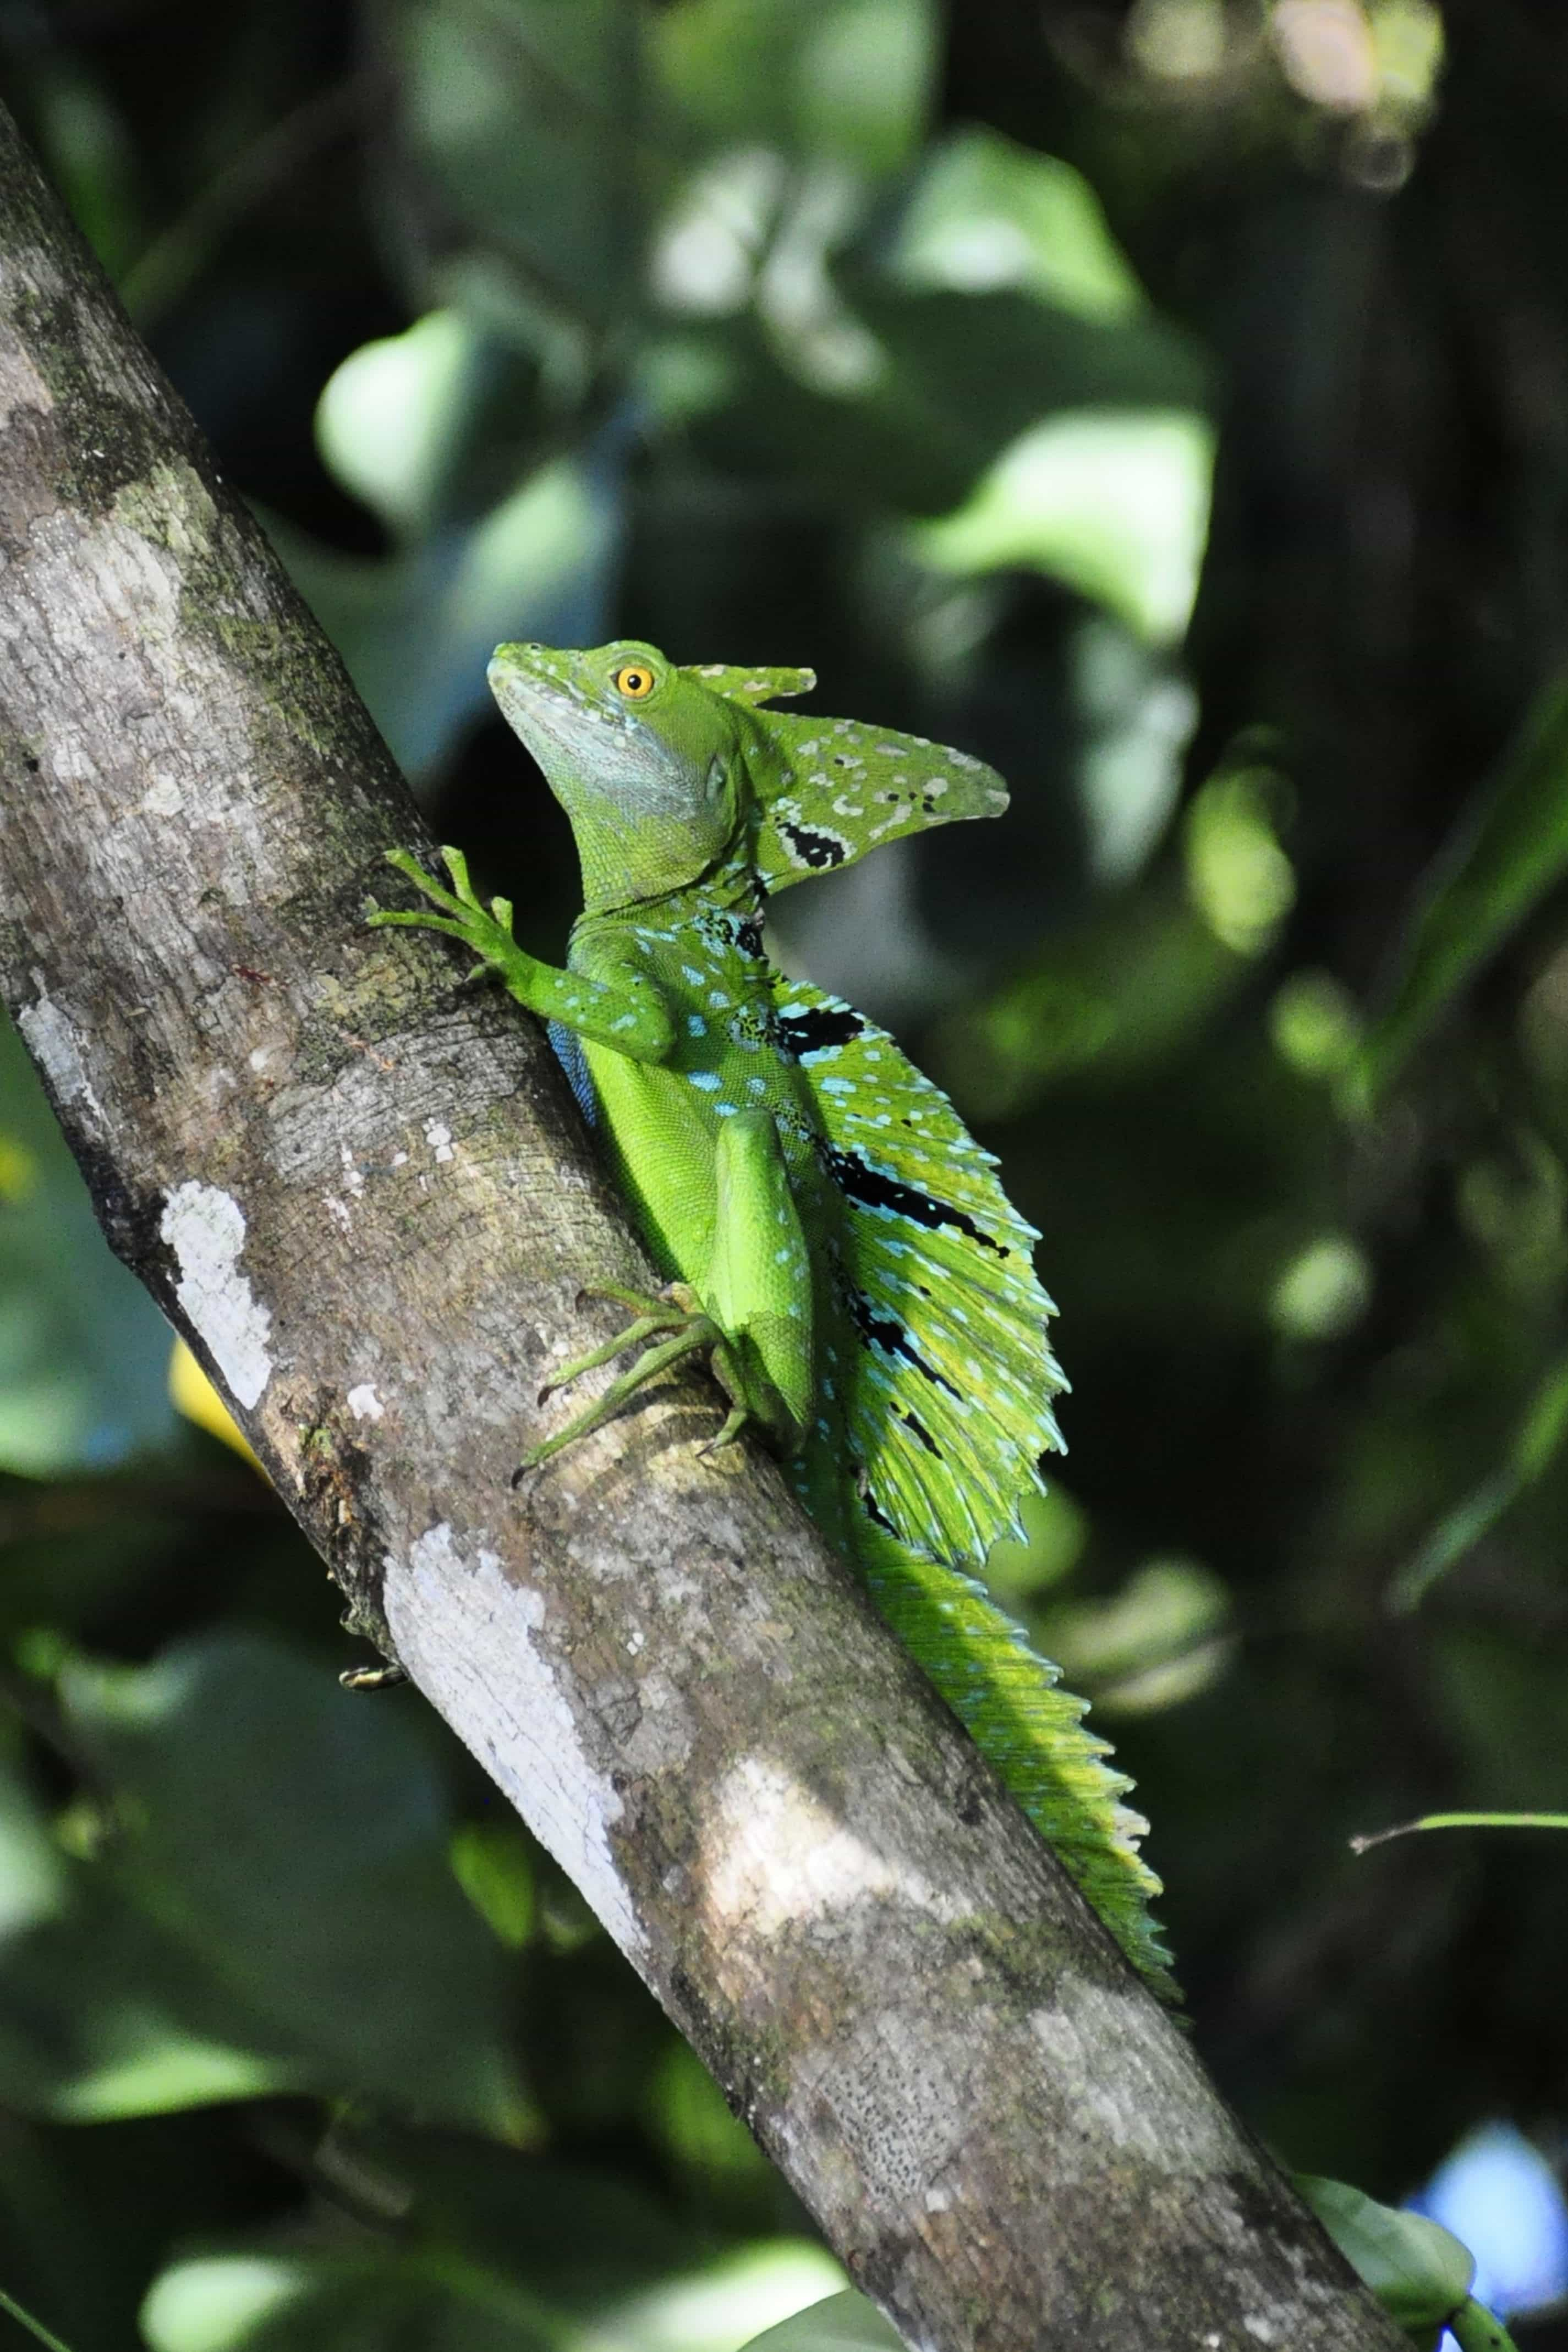 Free Picture Reptile Lizard Tree Zoology Camouflage